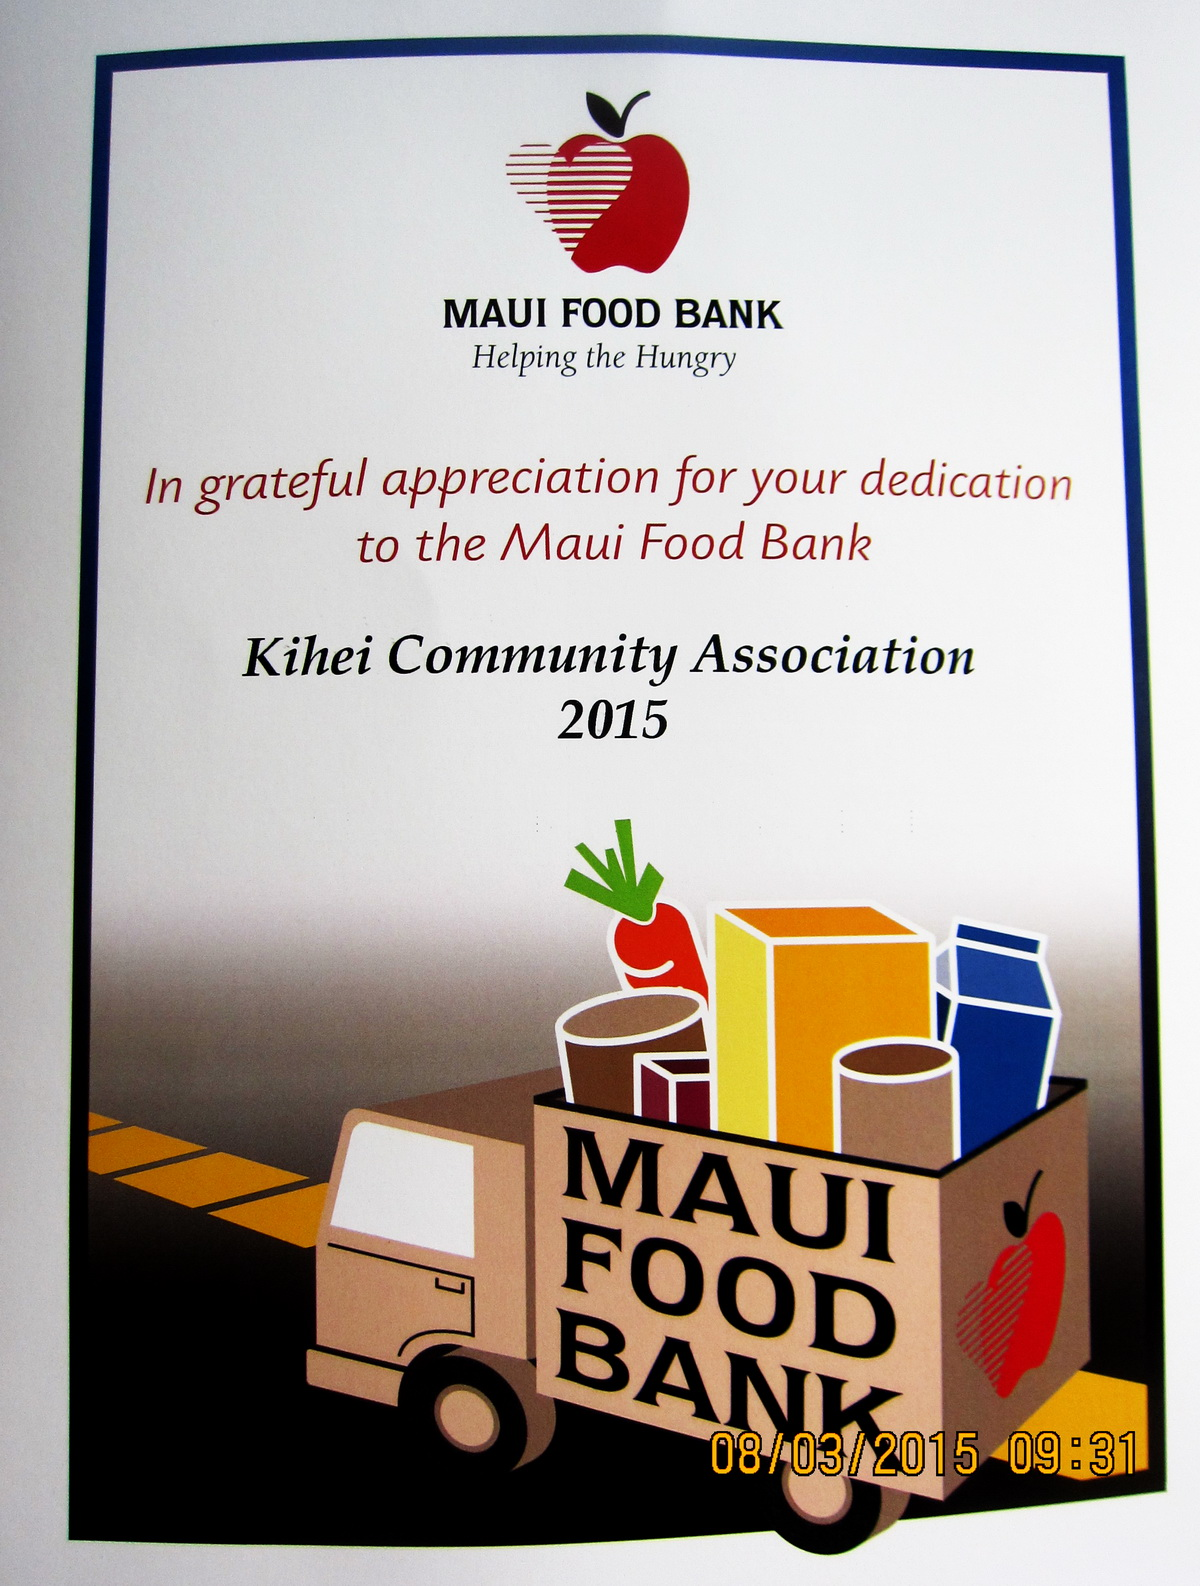 KCA MEMBERS, Maui Food Bank says mahalo